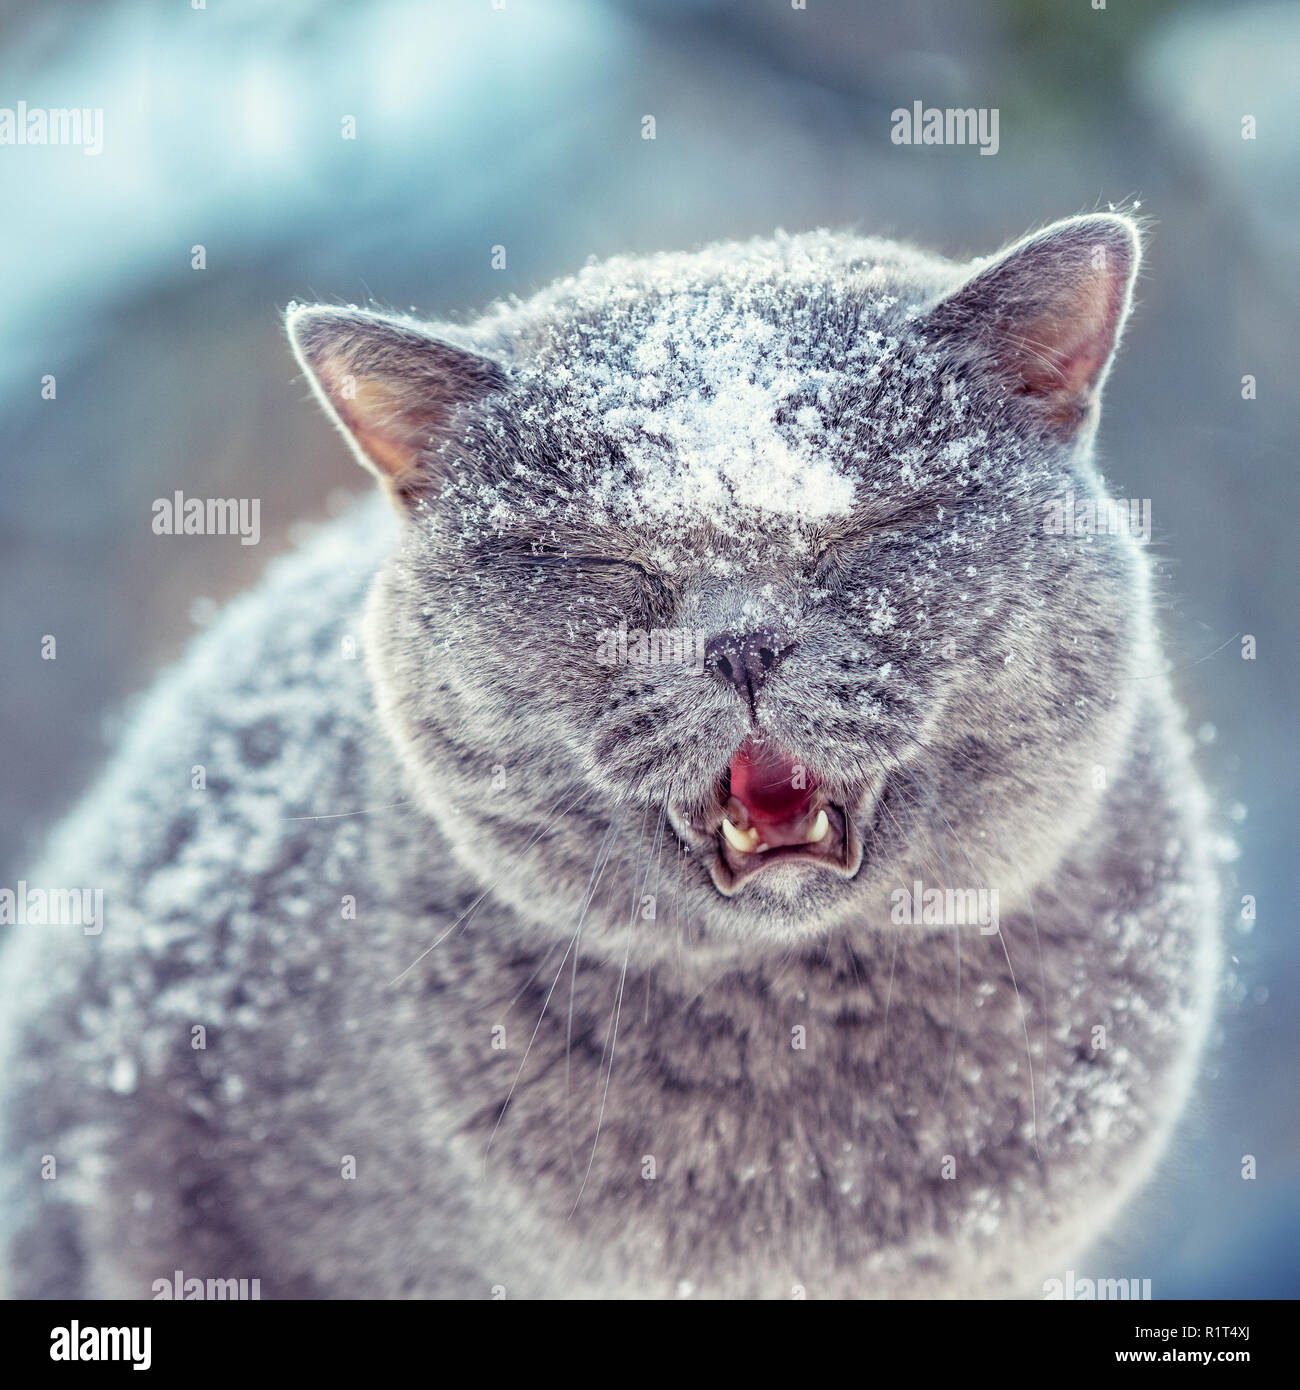 Cute British Shorthair cat walks outdoors in the snowfall in winter - Stock Image